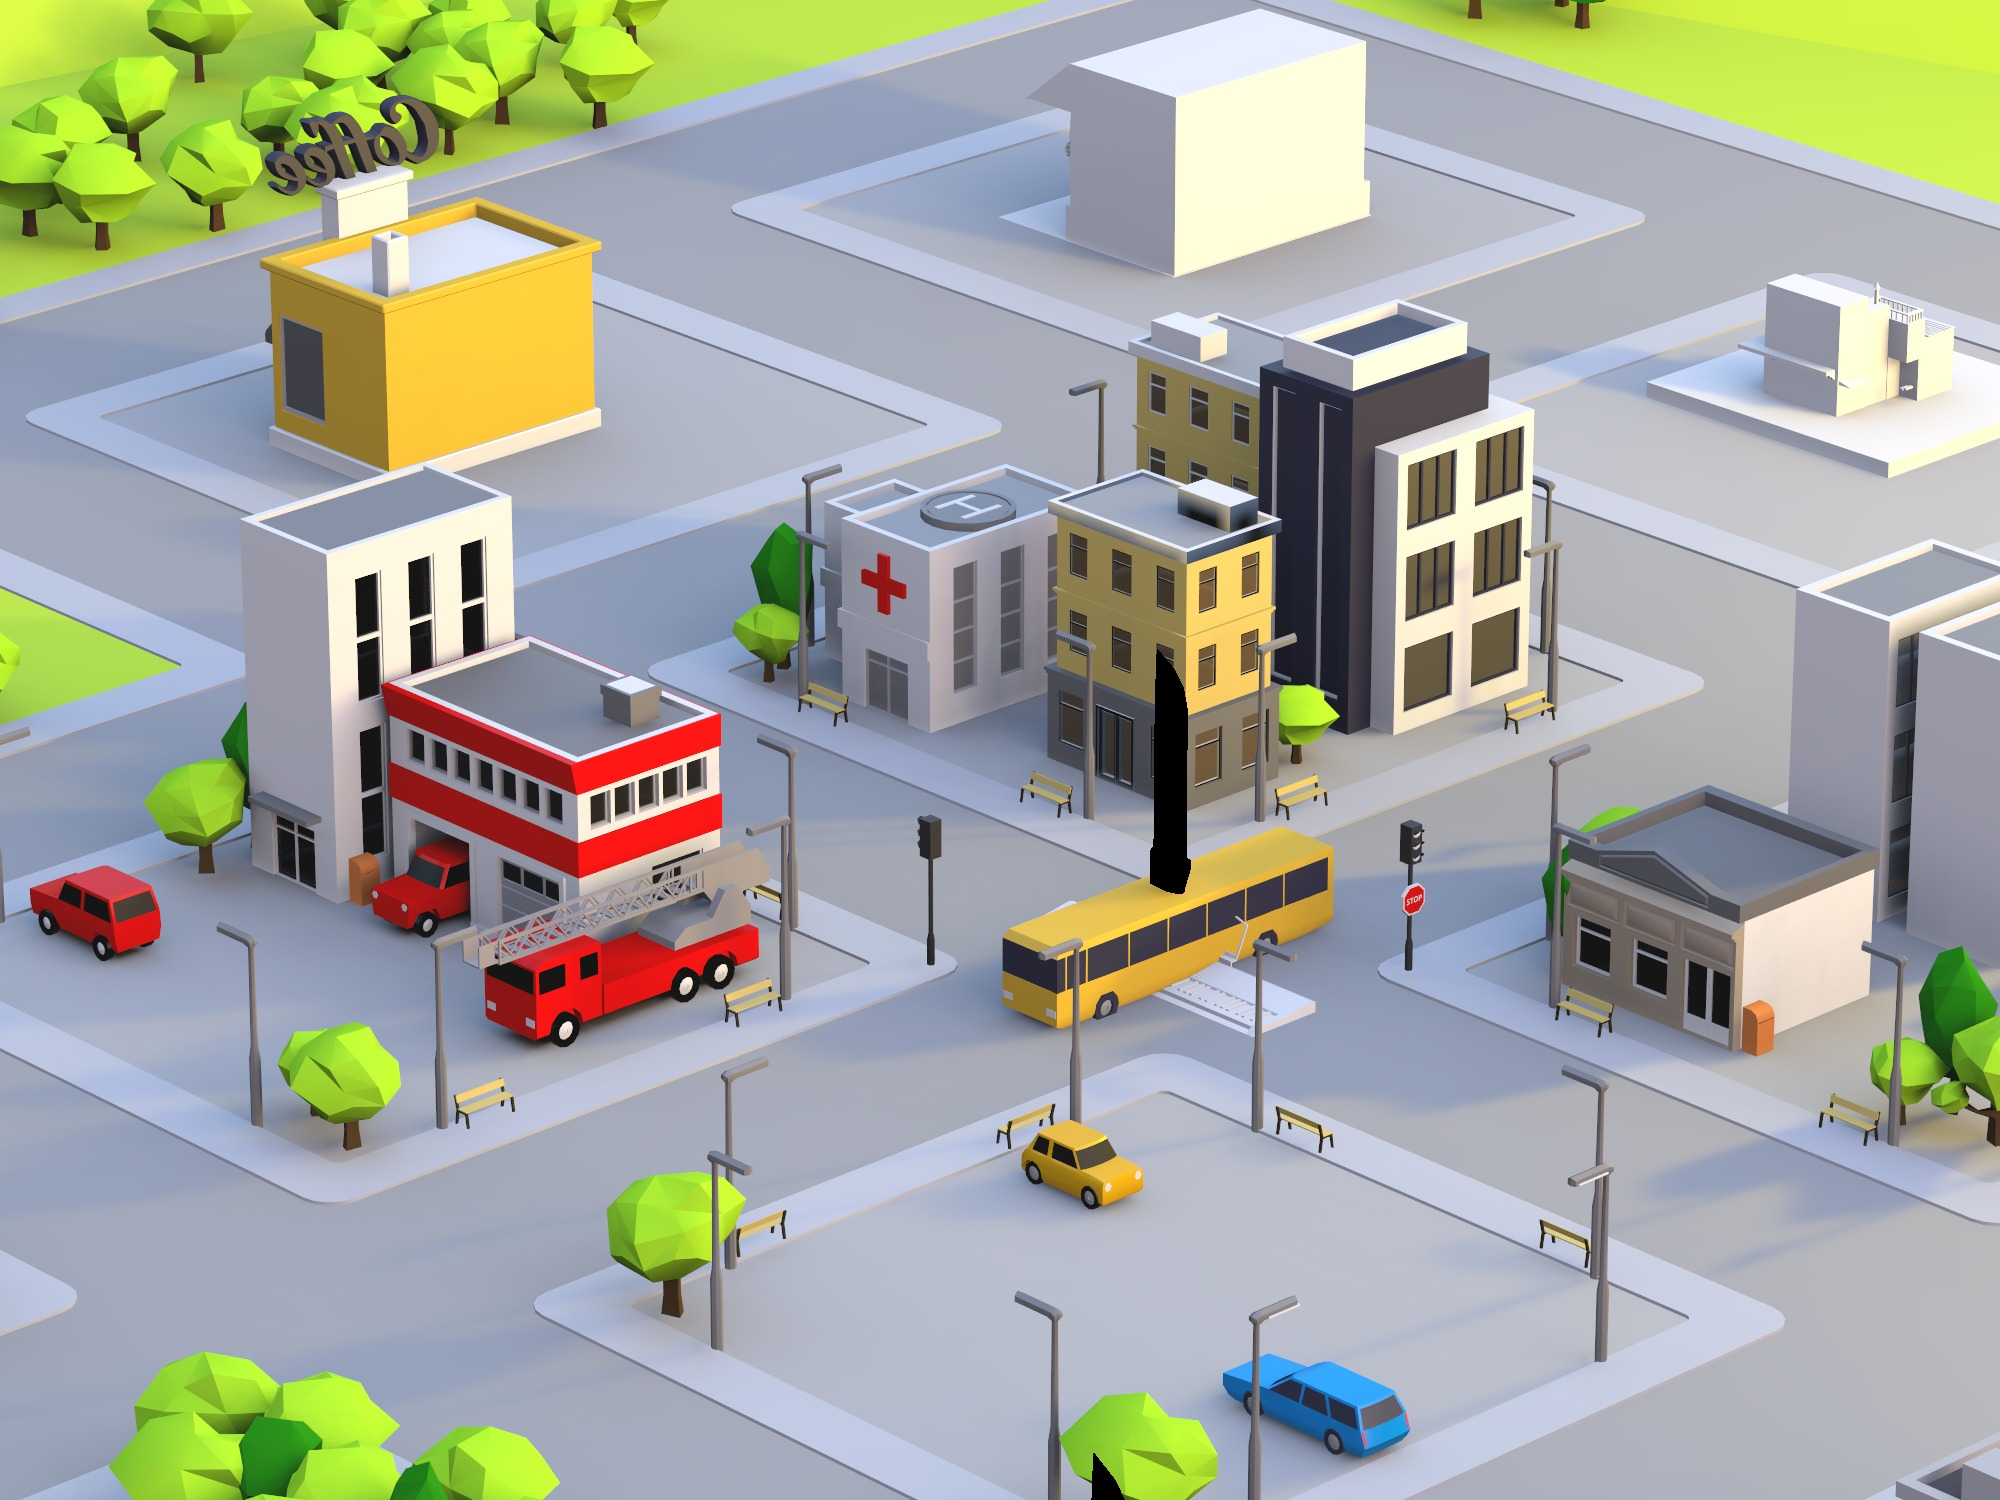 Build a city - drag and drop objects (copy) - 3D design by